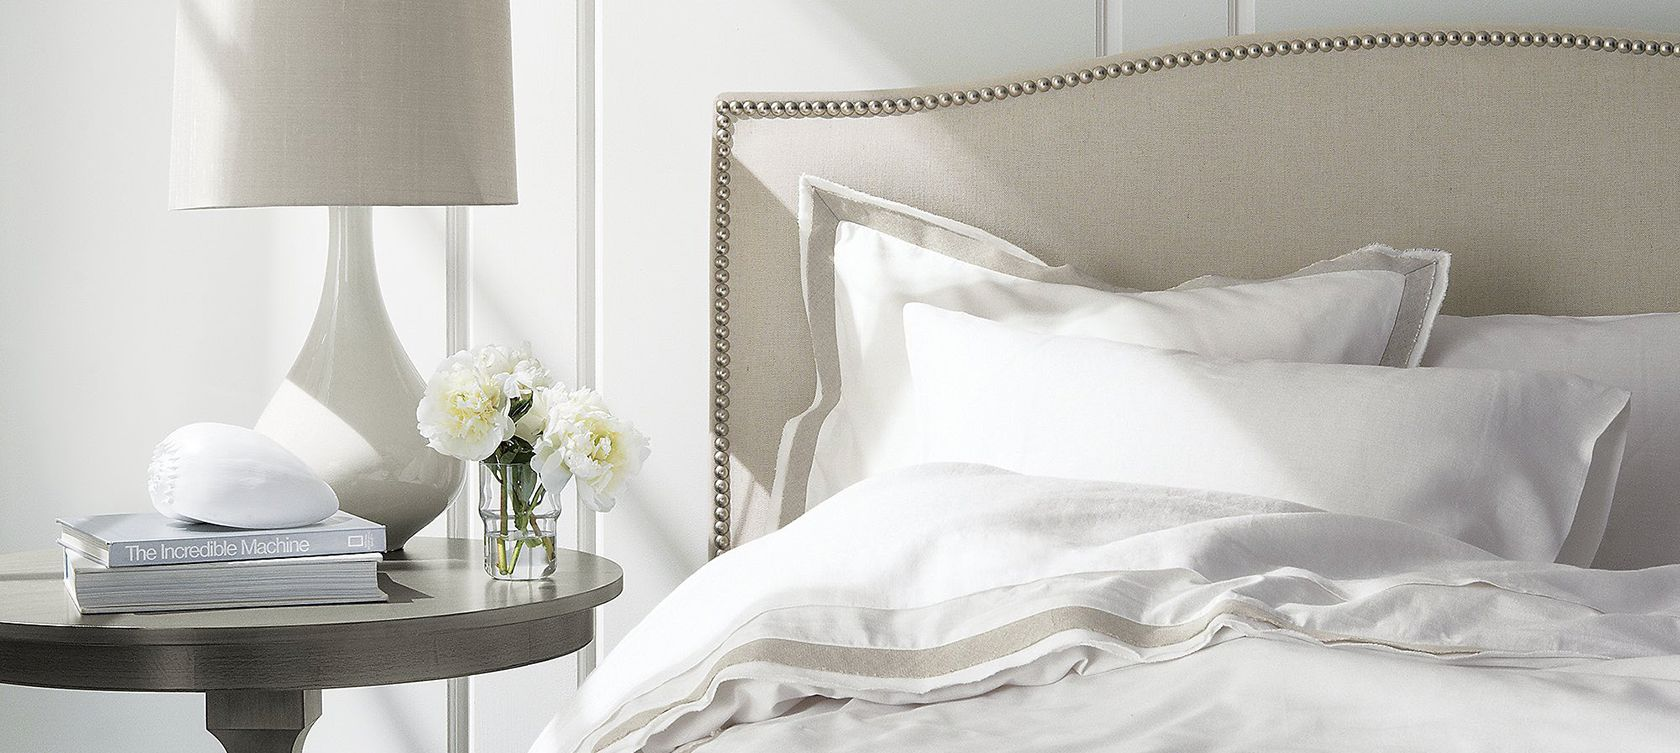 Bed and Bath | Crate and Barrel